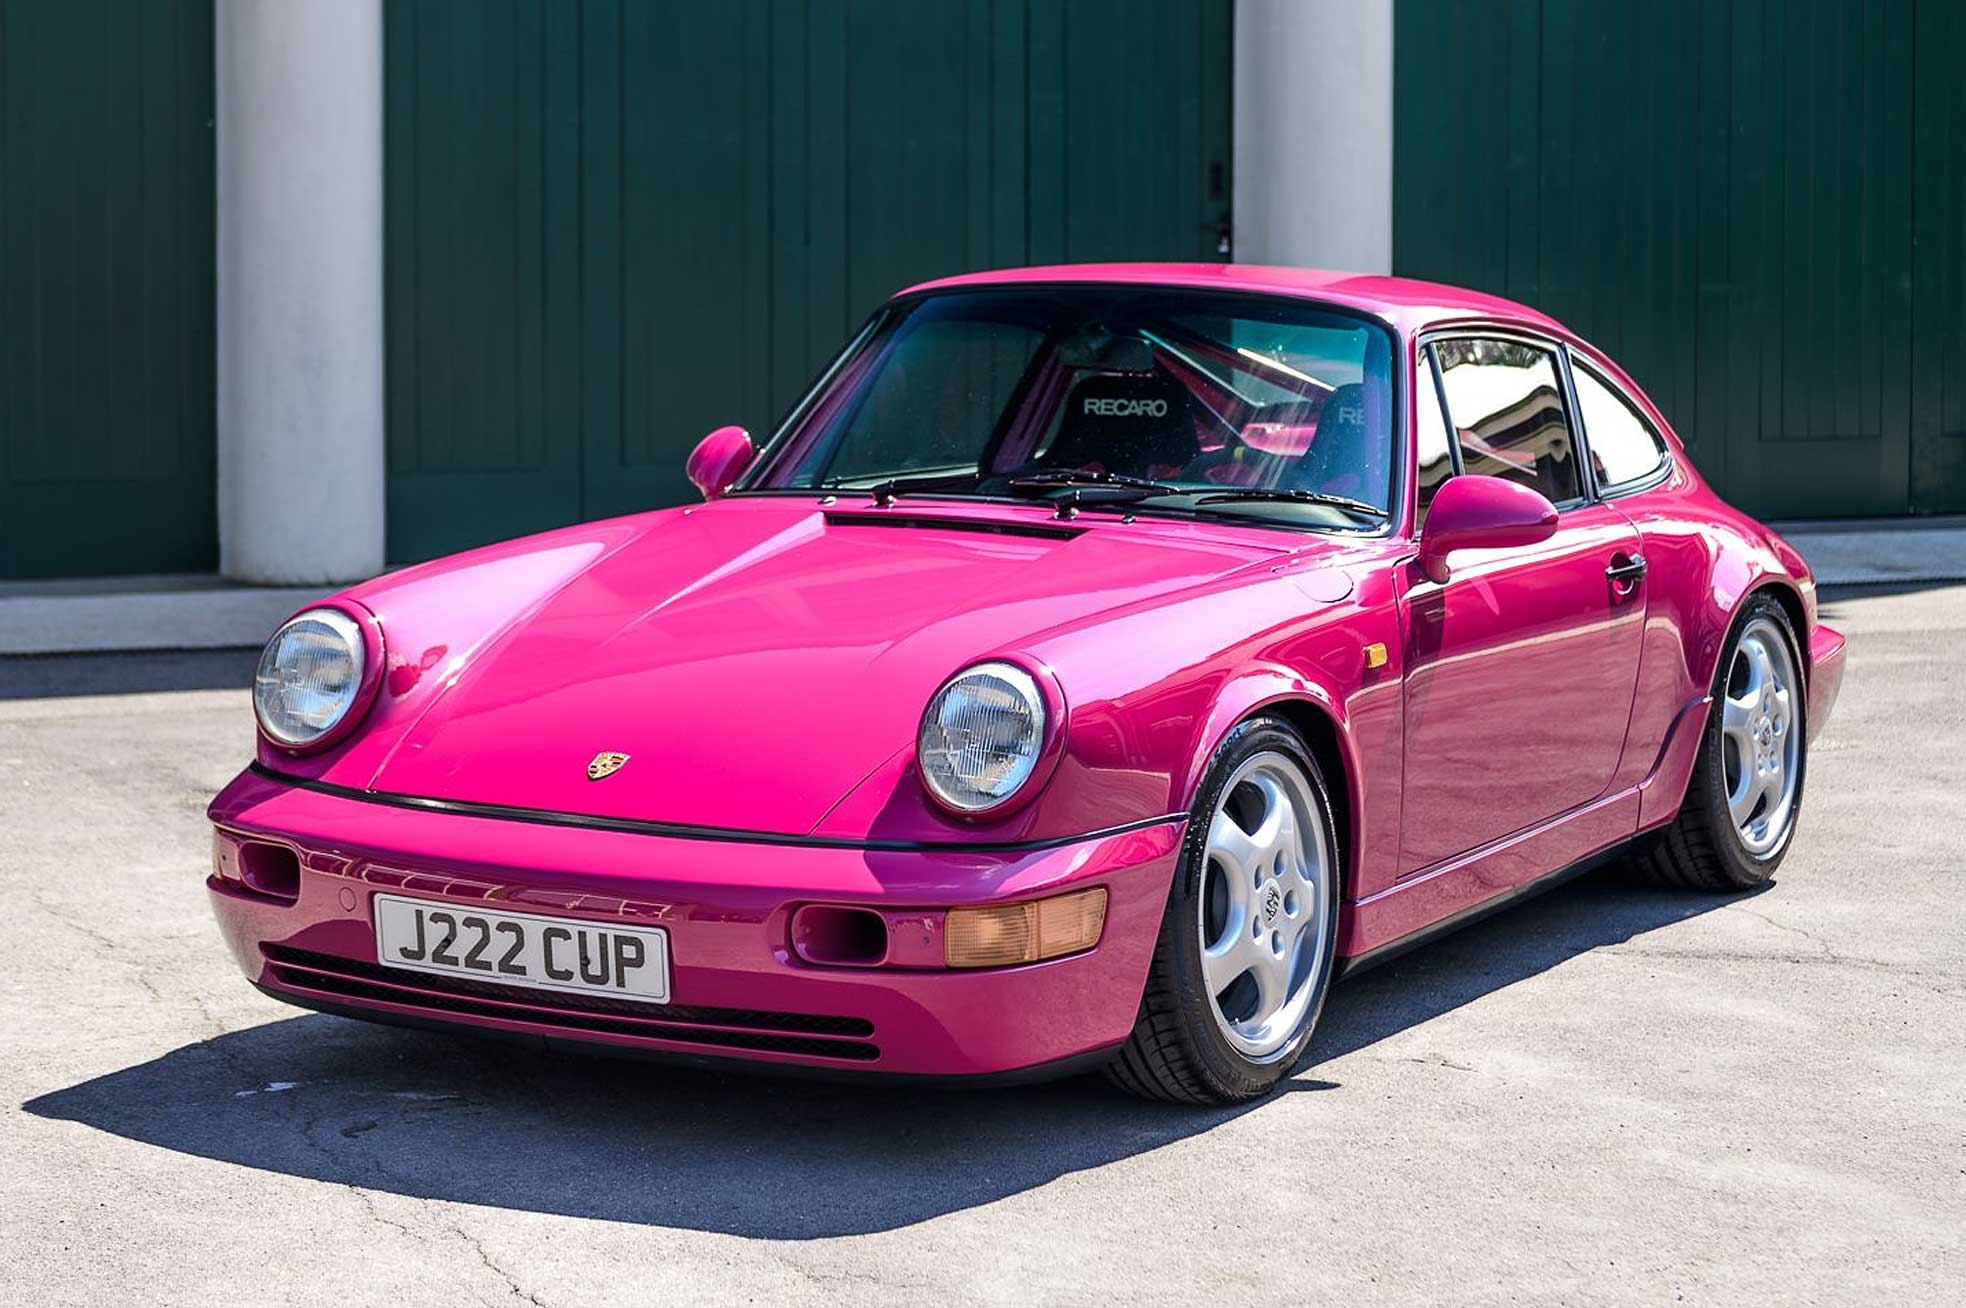 For sale 1991 Porsche 911 (964) Carrera RS Clubsport - Sports Purpose, Bicester